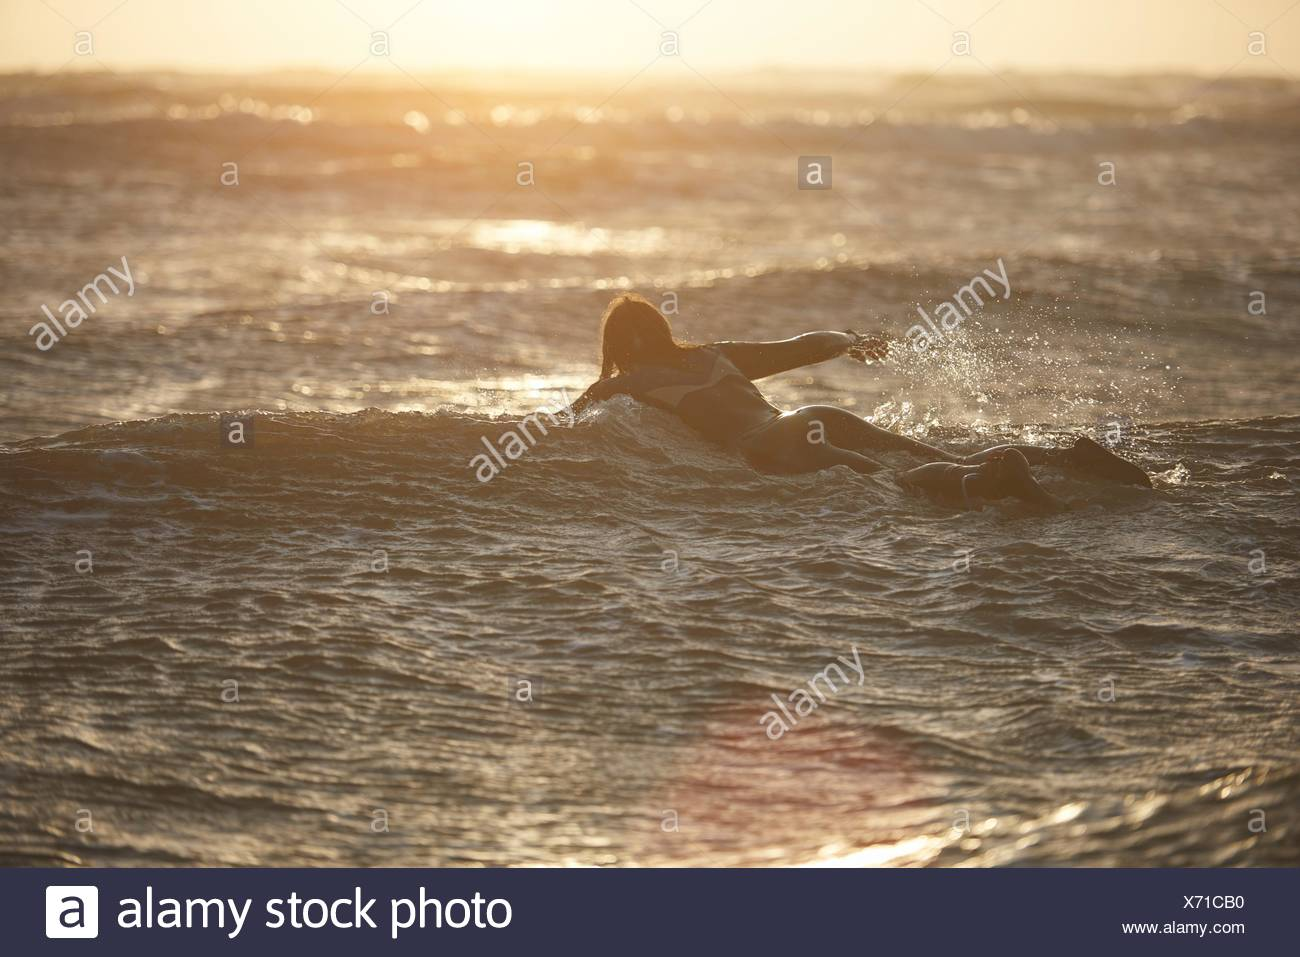 Young male surfer paddling out to sea on surfboard, Devon, England, UK - Stock Image